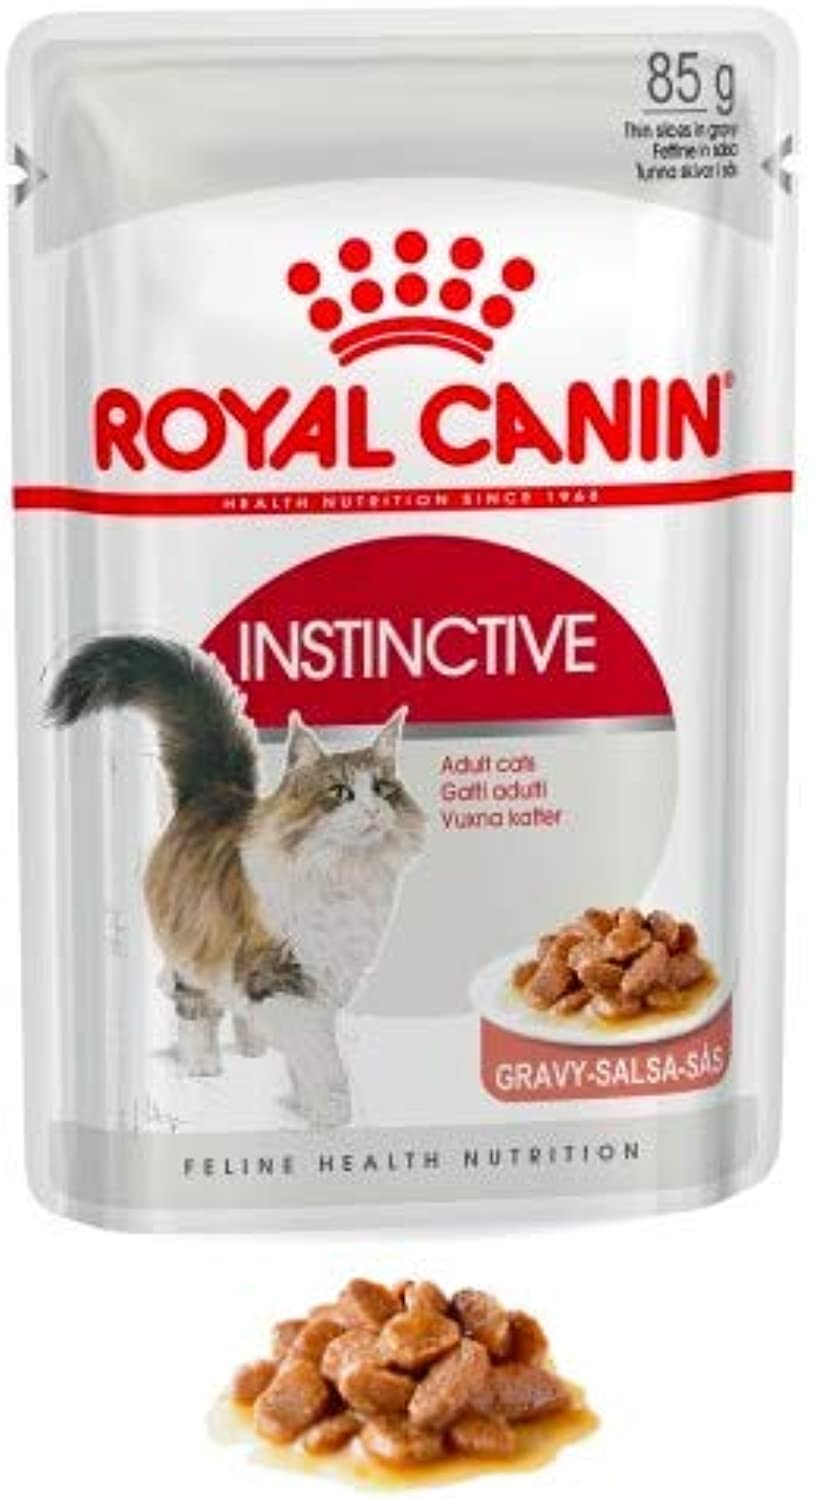 Maltbys' Stores 1904 Limited 48 x 85g (wet pouch) Royal Canin INSTINCTIVE (IN GRAVY) Size Health Nutrition Cat Food